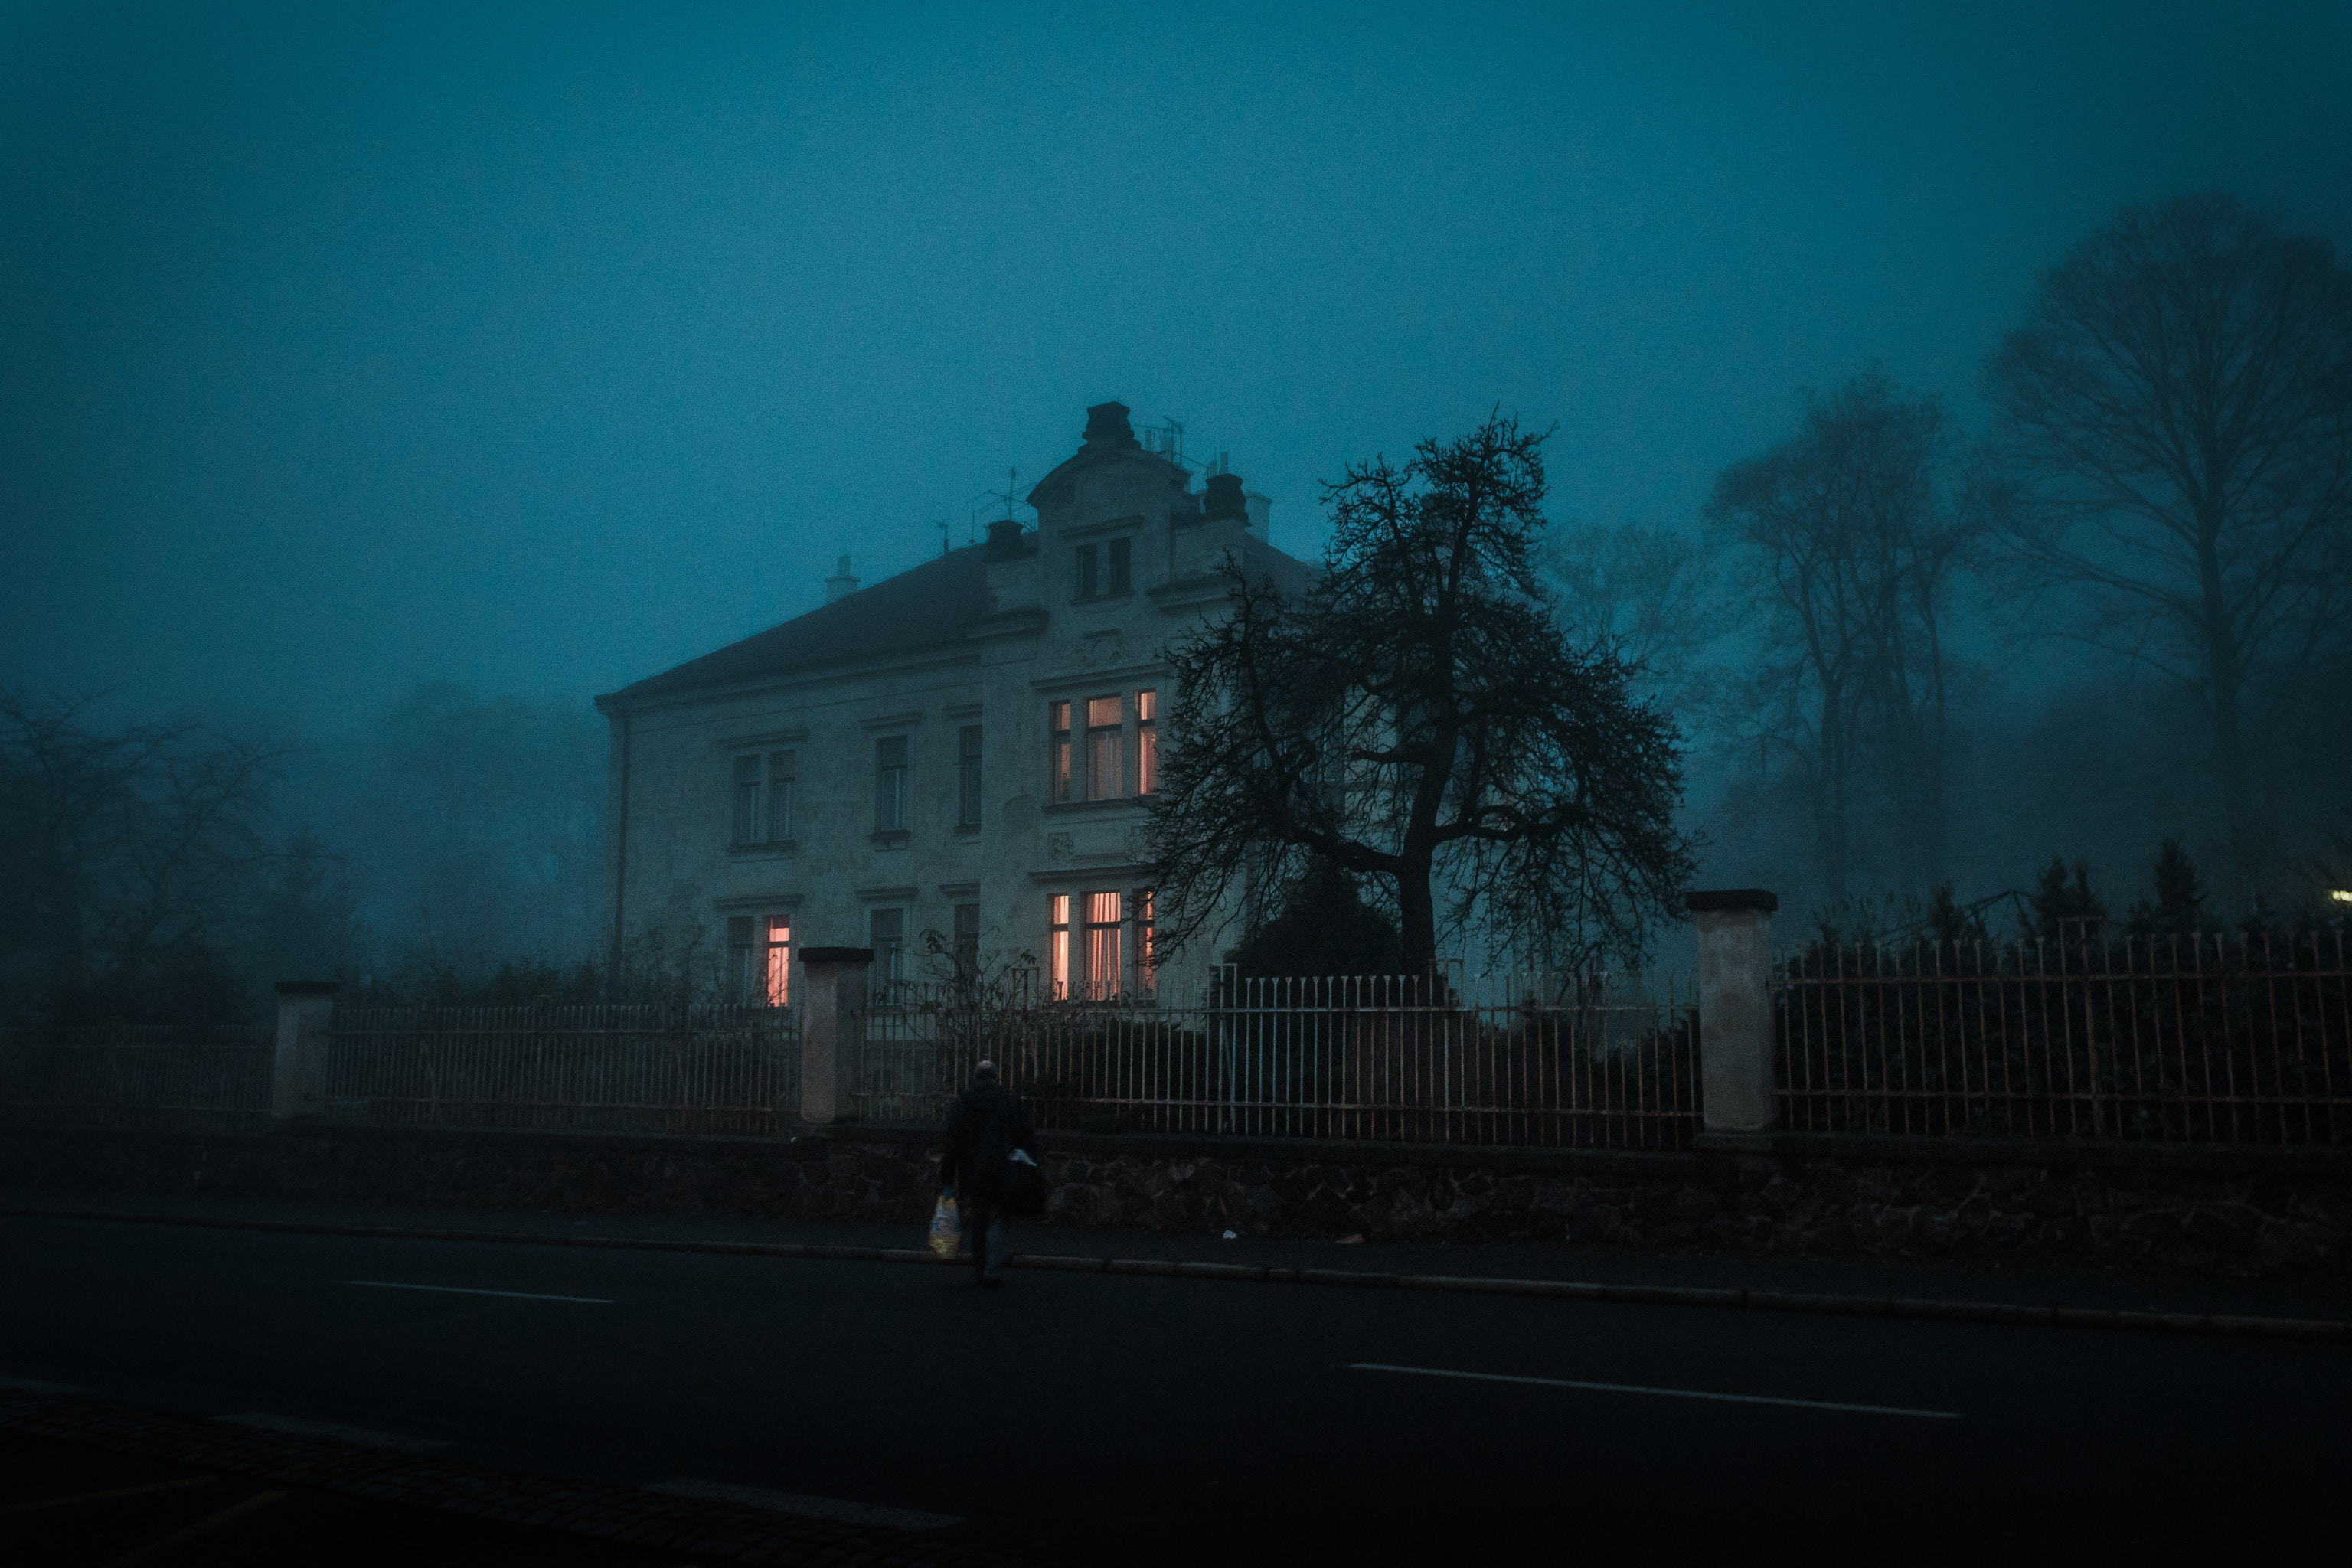 Haunted Houses, ghosts and witches - Wall Street English